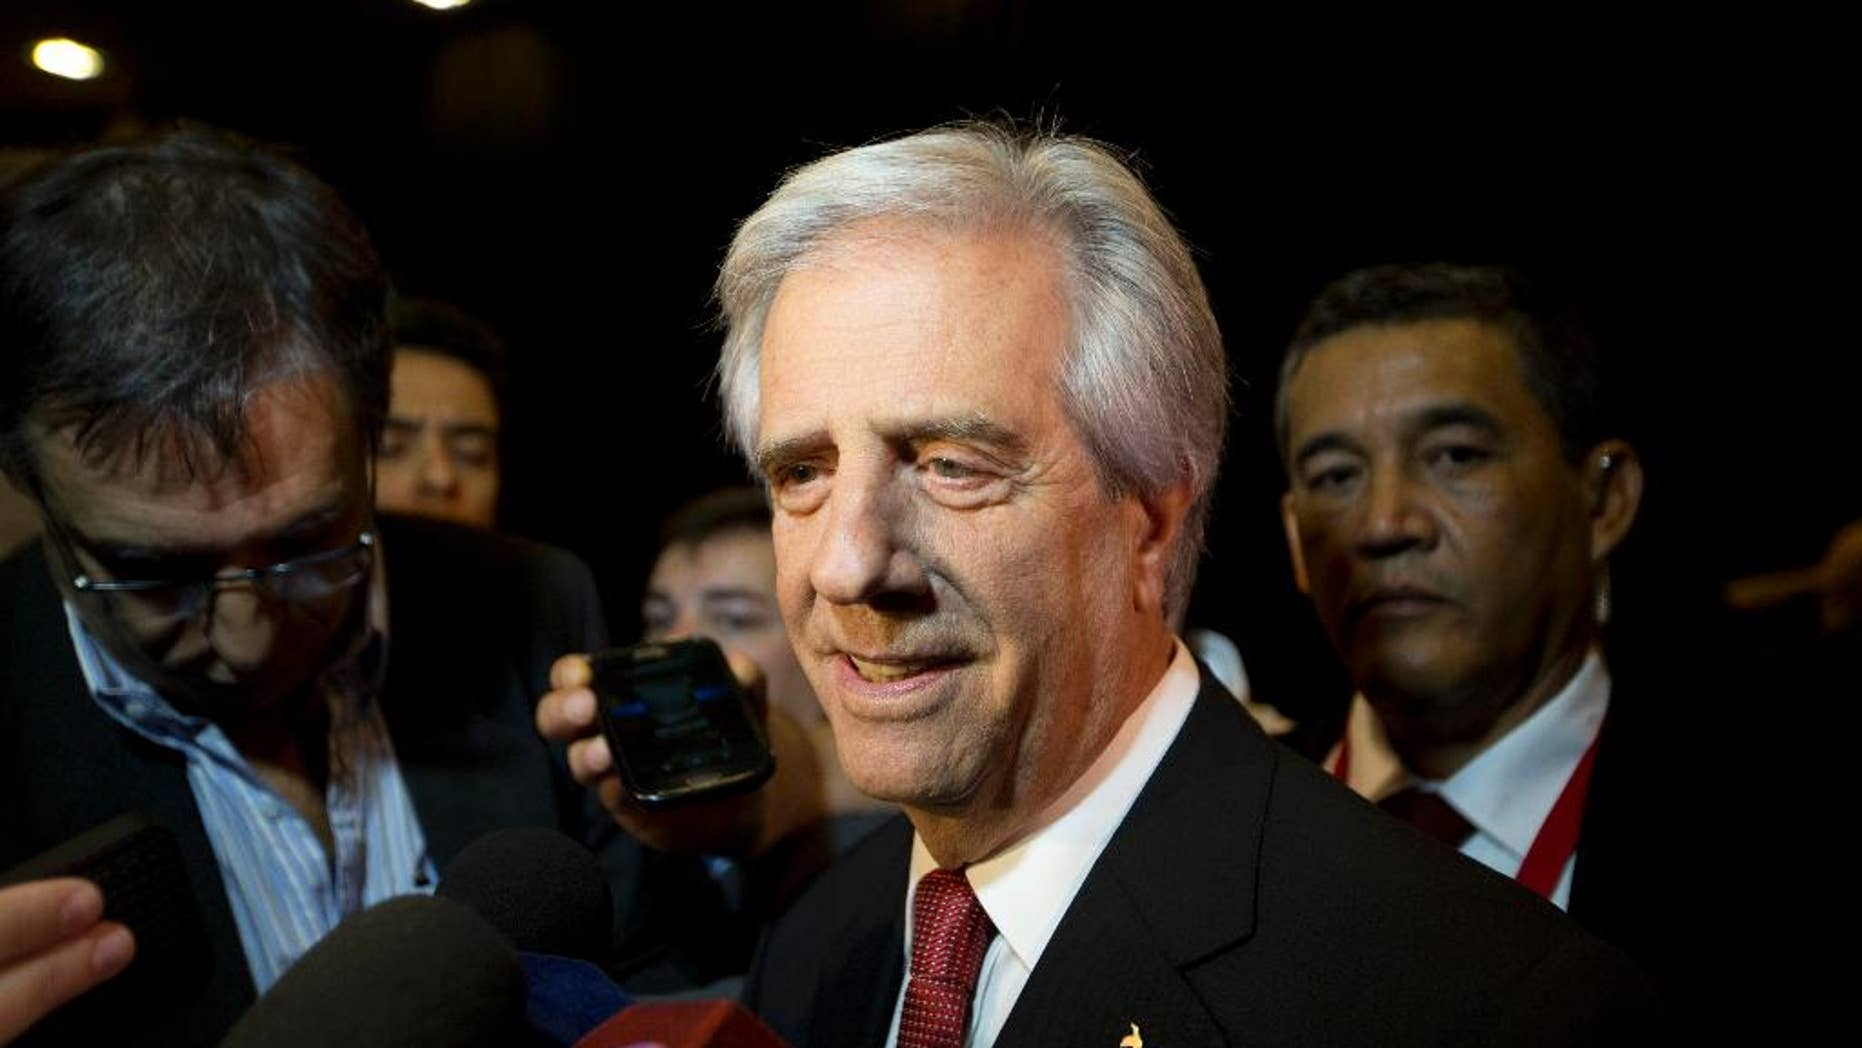 Uruguay's President Tabare Vazquez speaks to reporters as he arrives to the CEO Summit of the Americas in Panama City, Friday, April 10, 2015.  The second CEO Summit organized by Panama's government and the Inter-American Development Bank, gathers business and political leaders, just before the start of the VII Summit of the Americas. (AP Photo/Moises Castillo)